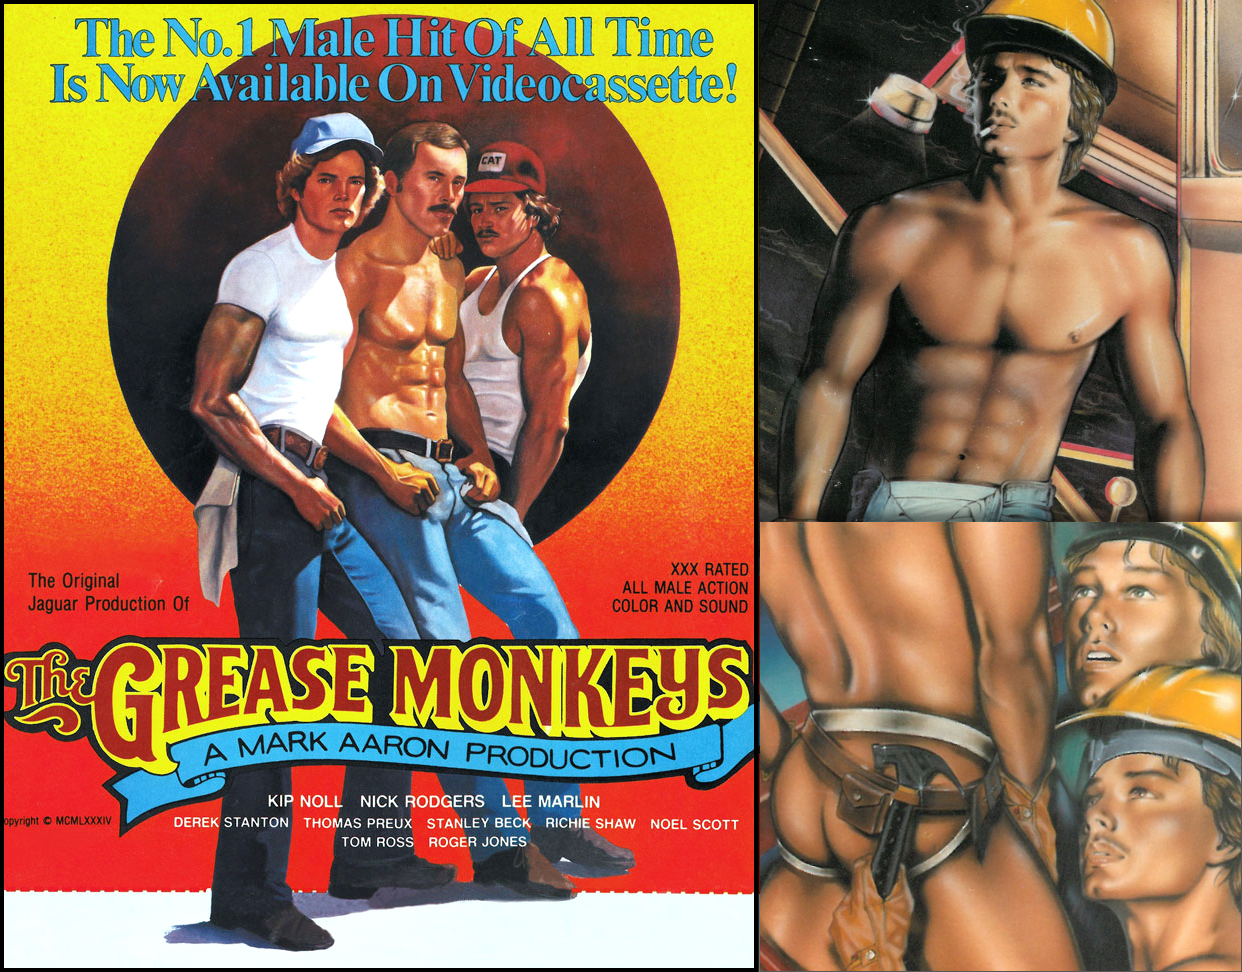 Vintage ads for Grease Monkeys and Hardhat